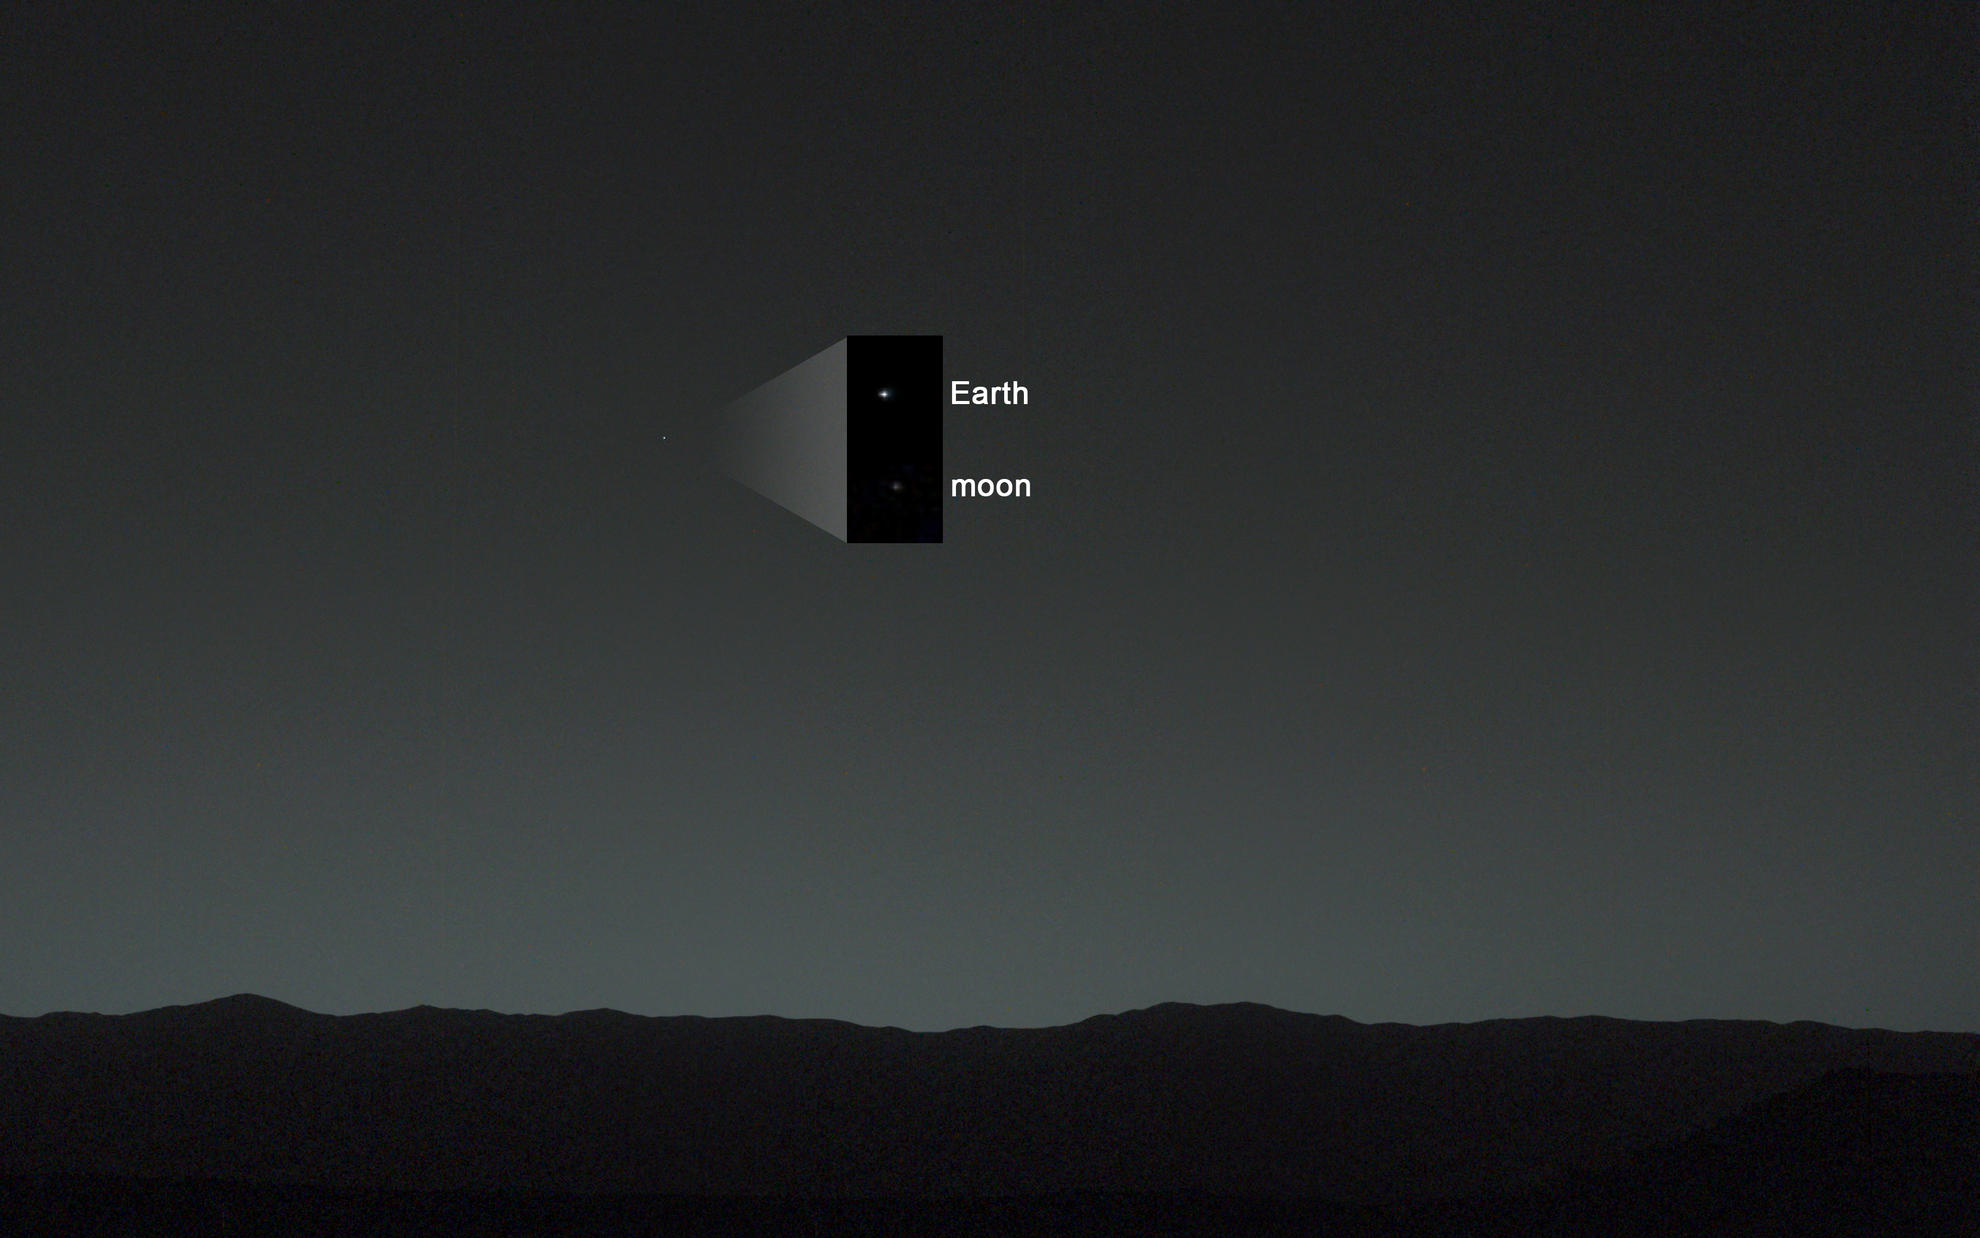 This view of the twilight sky and Martian horizon taken by NASA's Curiosity Mars rover includes Earth as the brightest point of light in the night sky